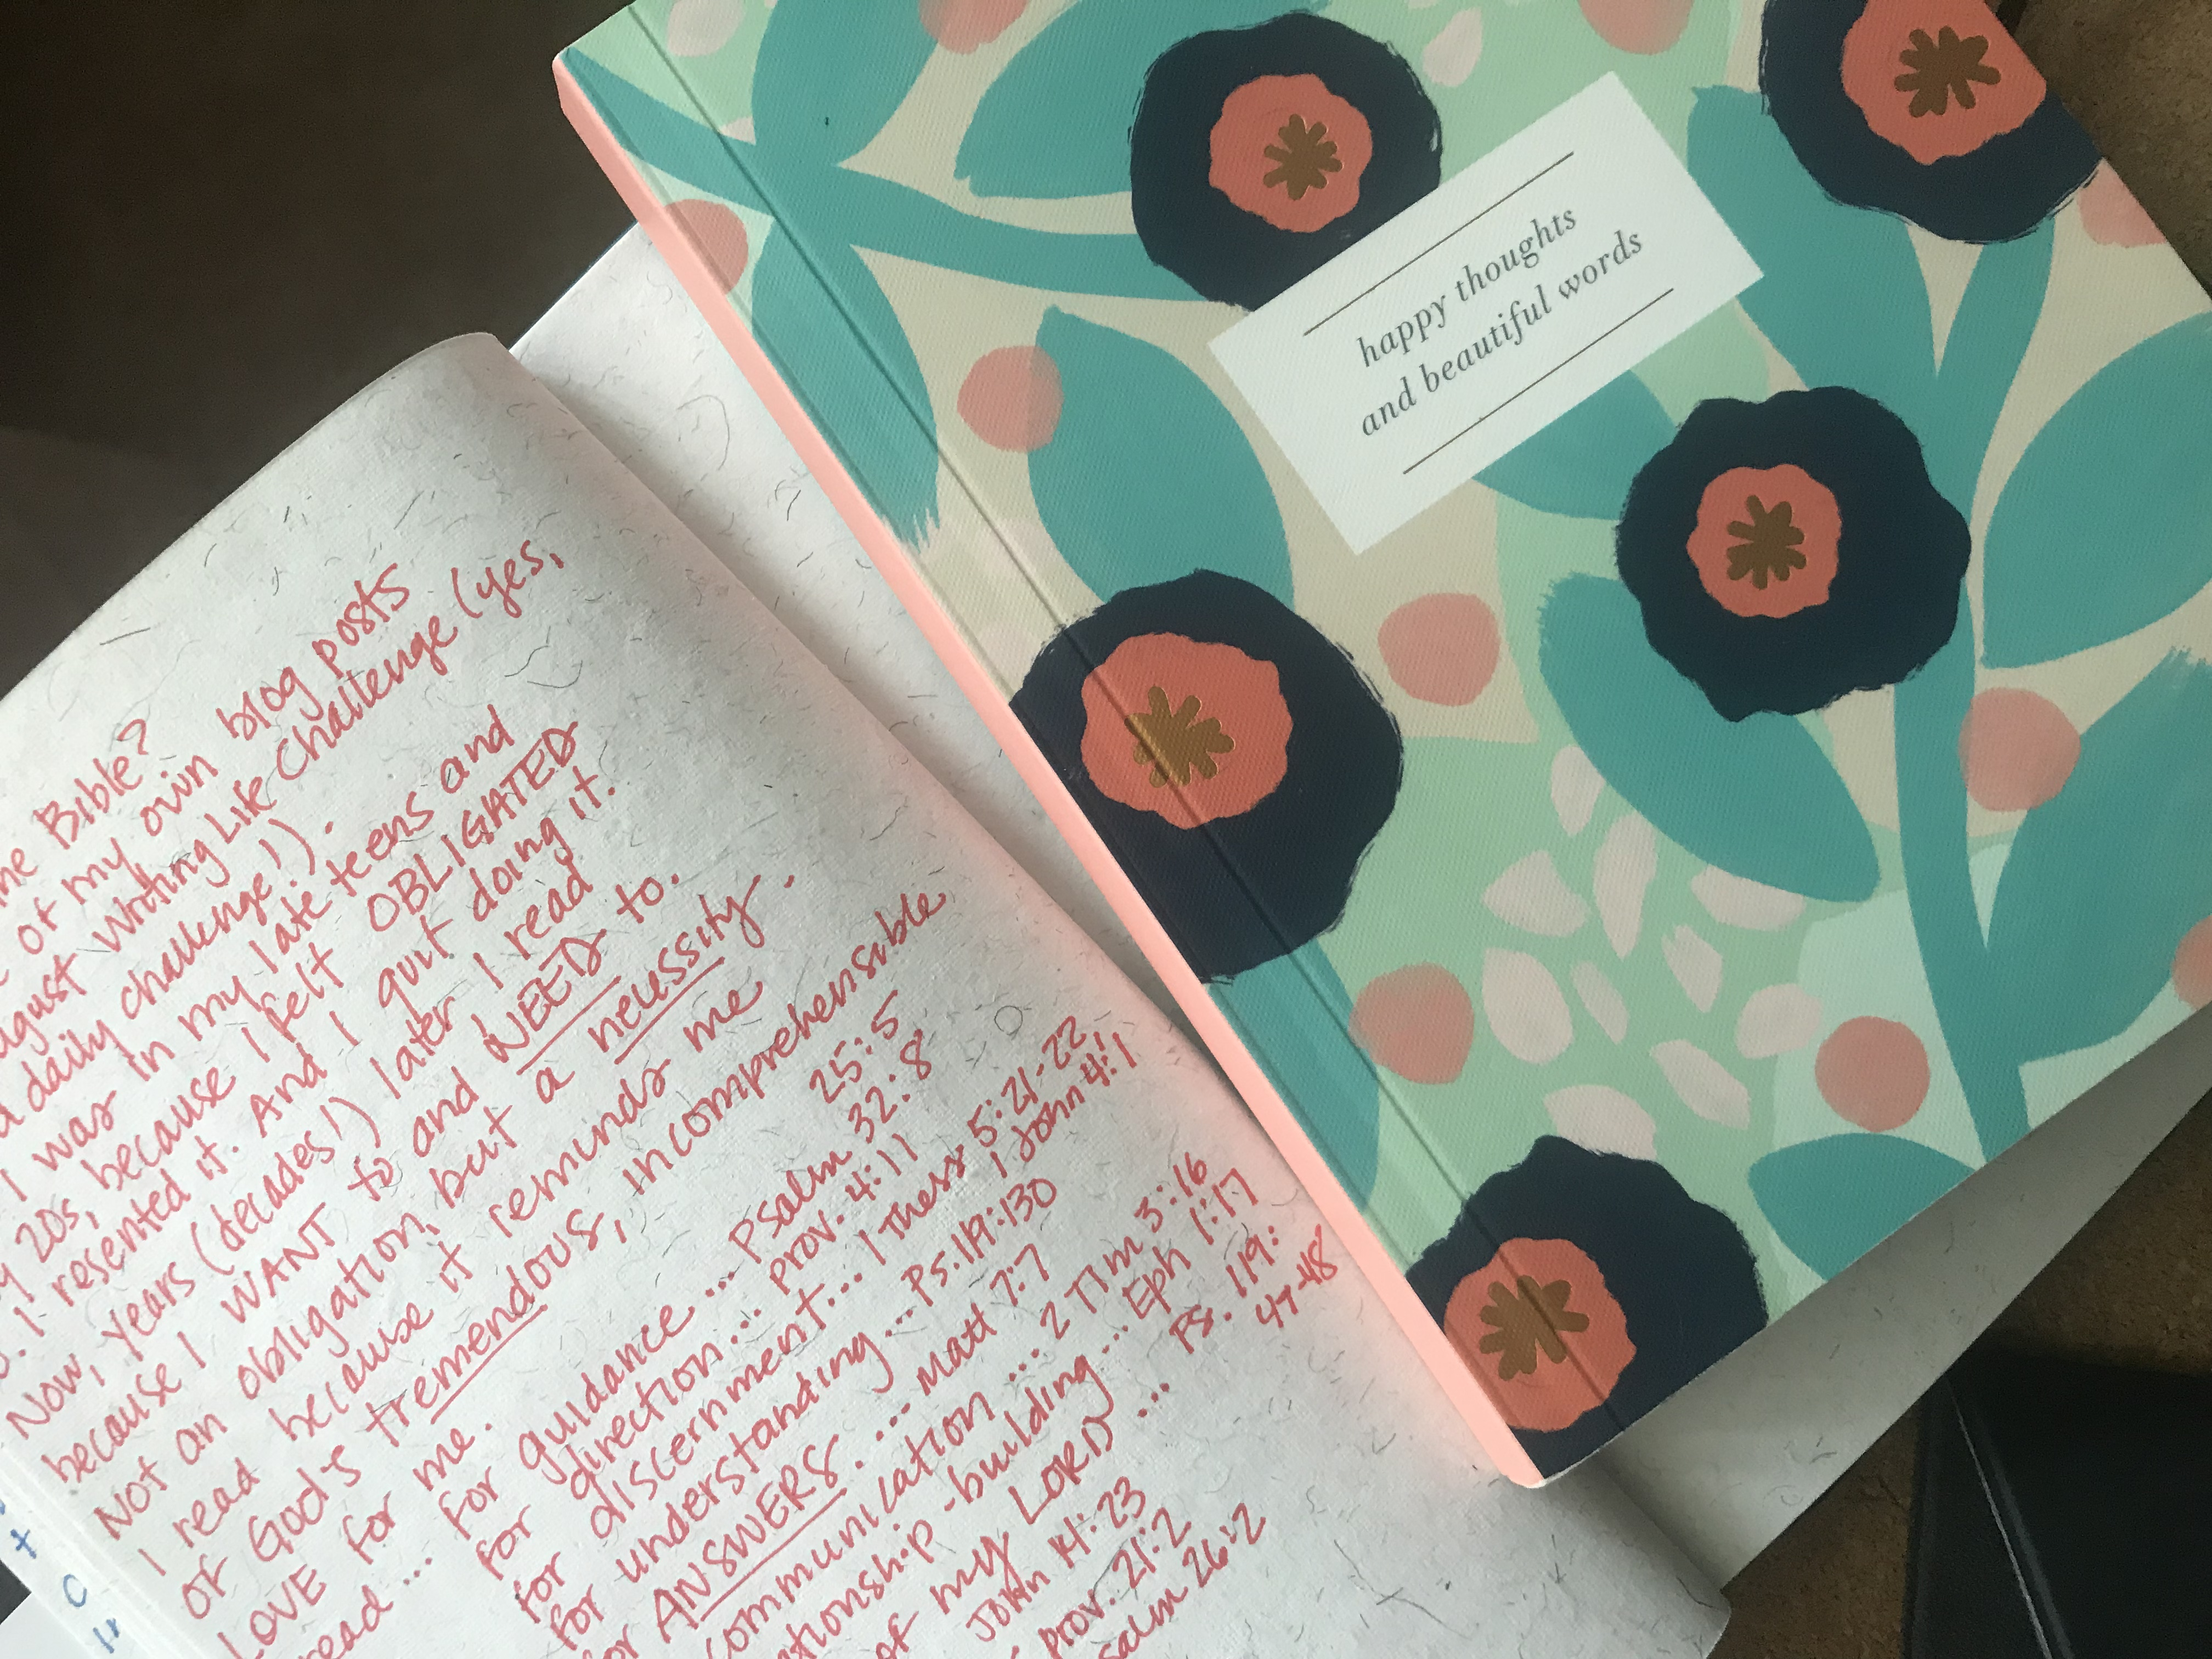 "Journal with a hand-written page listing reasons the writer reads the Bible, and another, closed journal sitting on the opposite page. The closed journal has a floral design and the words ""Happy thoughts and beautiful words"" on the cover."